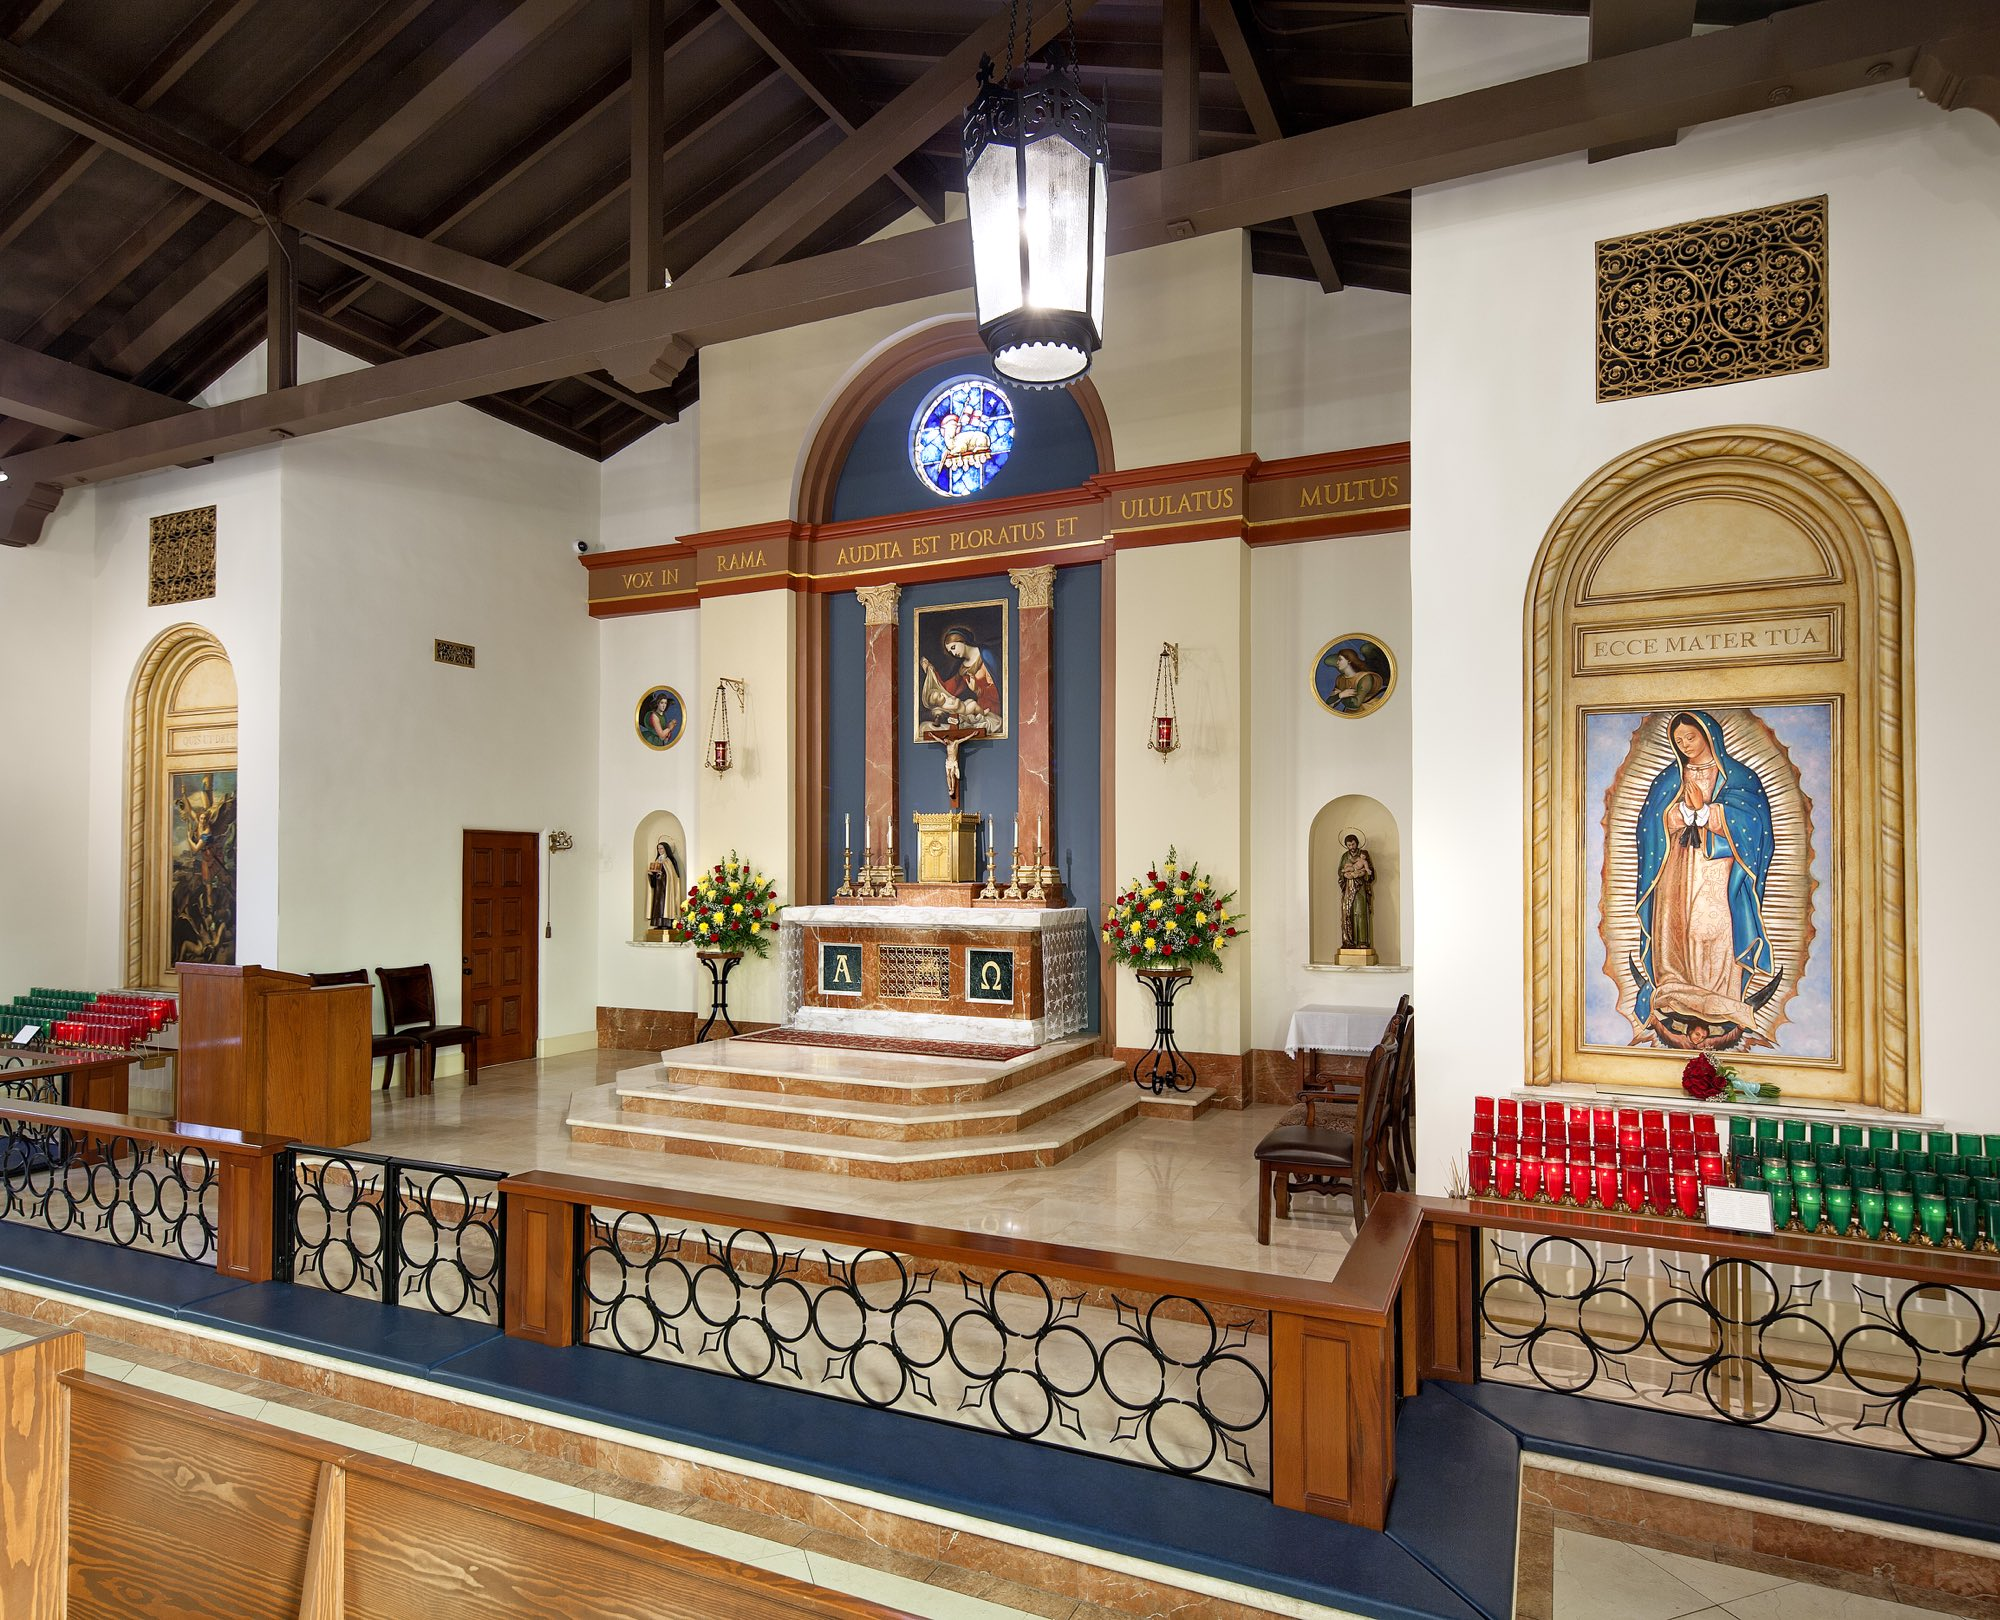 Marble altar sanctuary with gold our lady of Guadalupe and classical columns in mission style renovation by Harrison Design